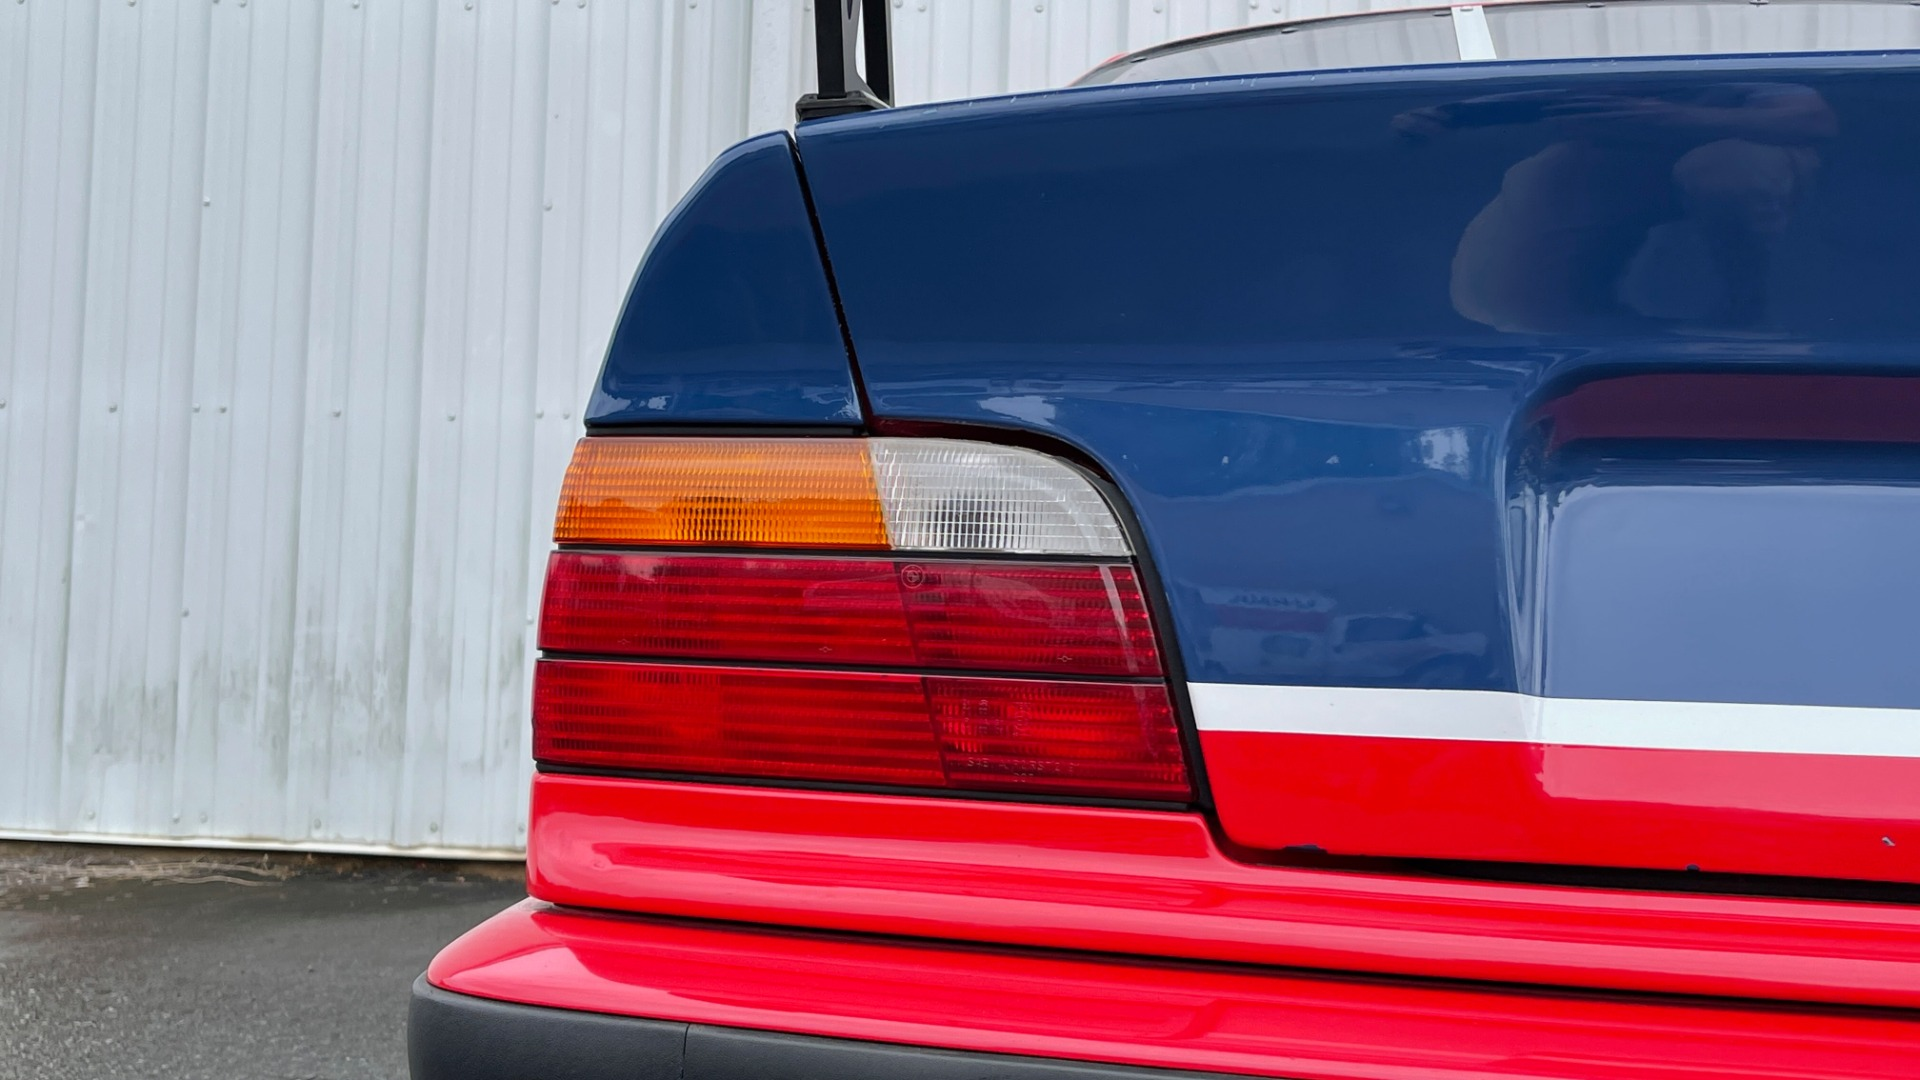 Used 1996 BMW 3-SERIES M3 TRACK CAR / 5-SPD / MANUAL / FULL CAGE / CARBON FIBER WING for sale $47,995 at Formula Imports in Charlotte NC 28227 40